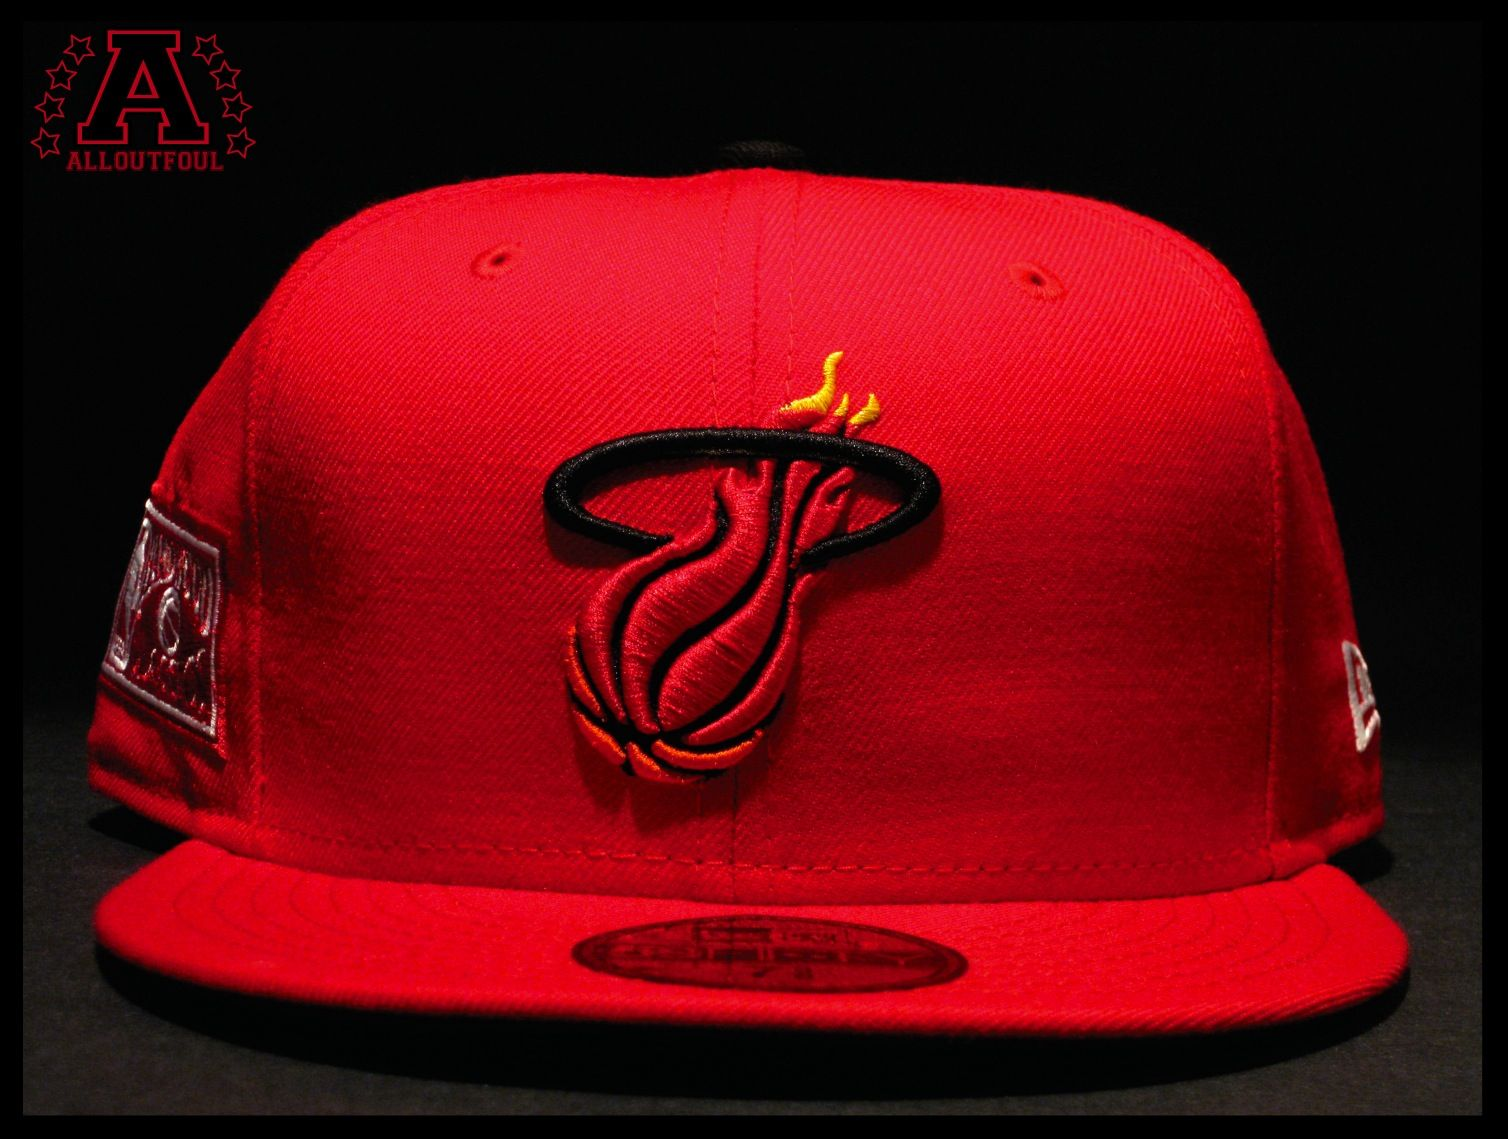 HOLIDAY SALE!! Riding helmets, Red, Miami heat